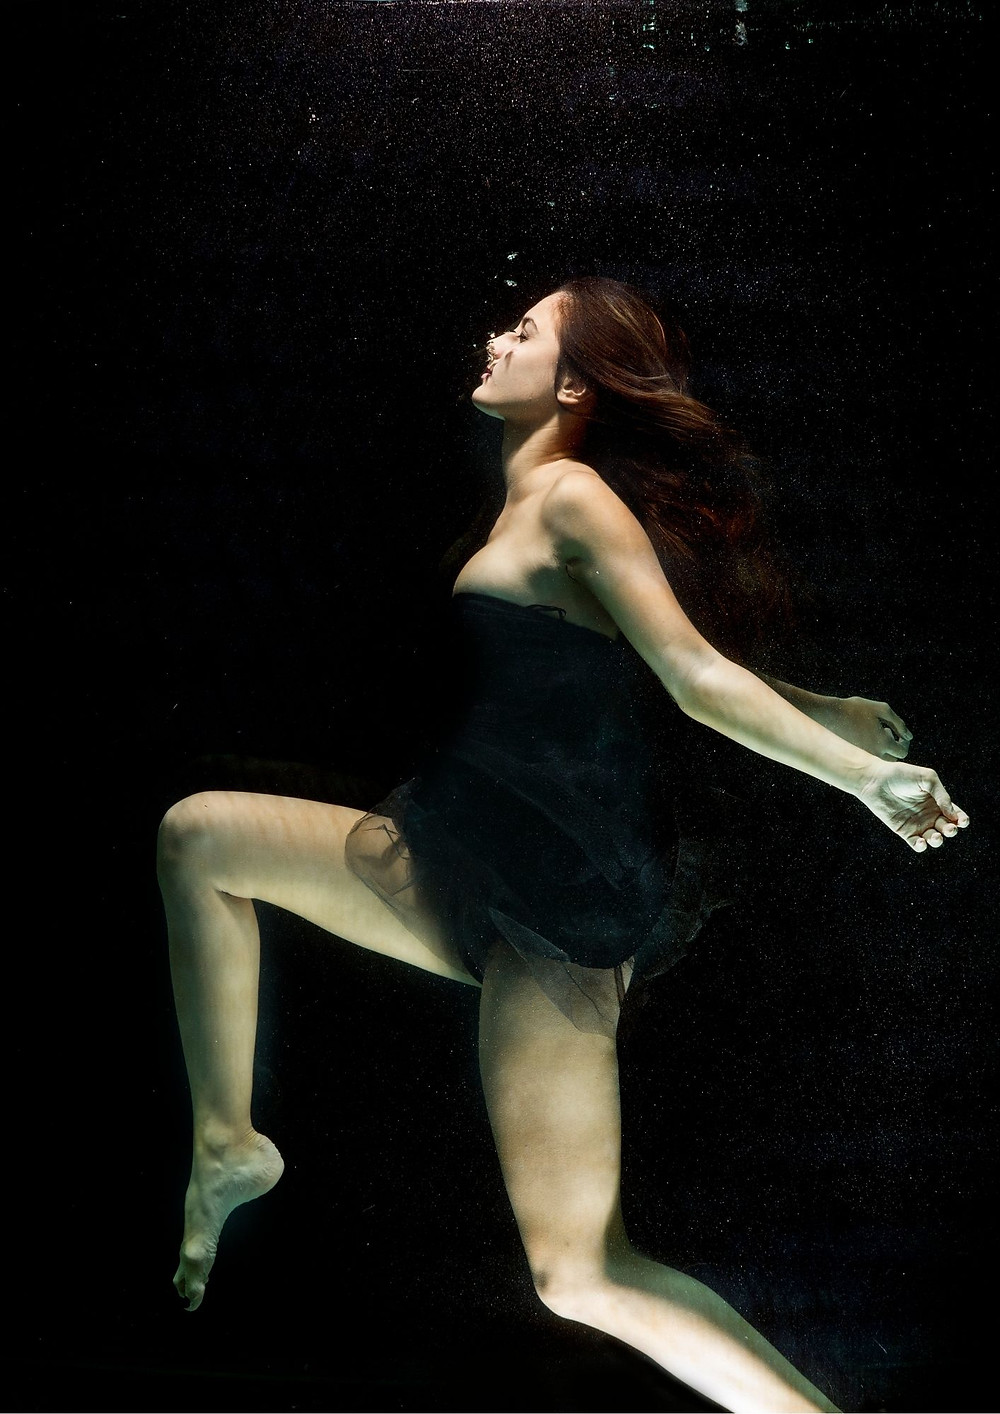 Close-up photo of woman underwater